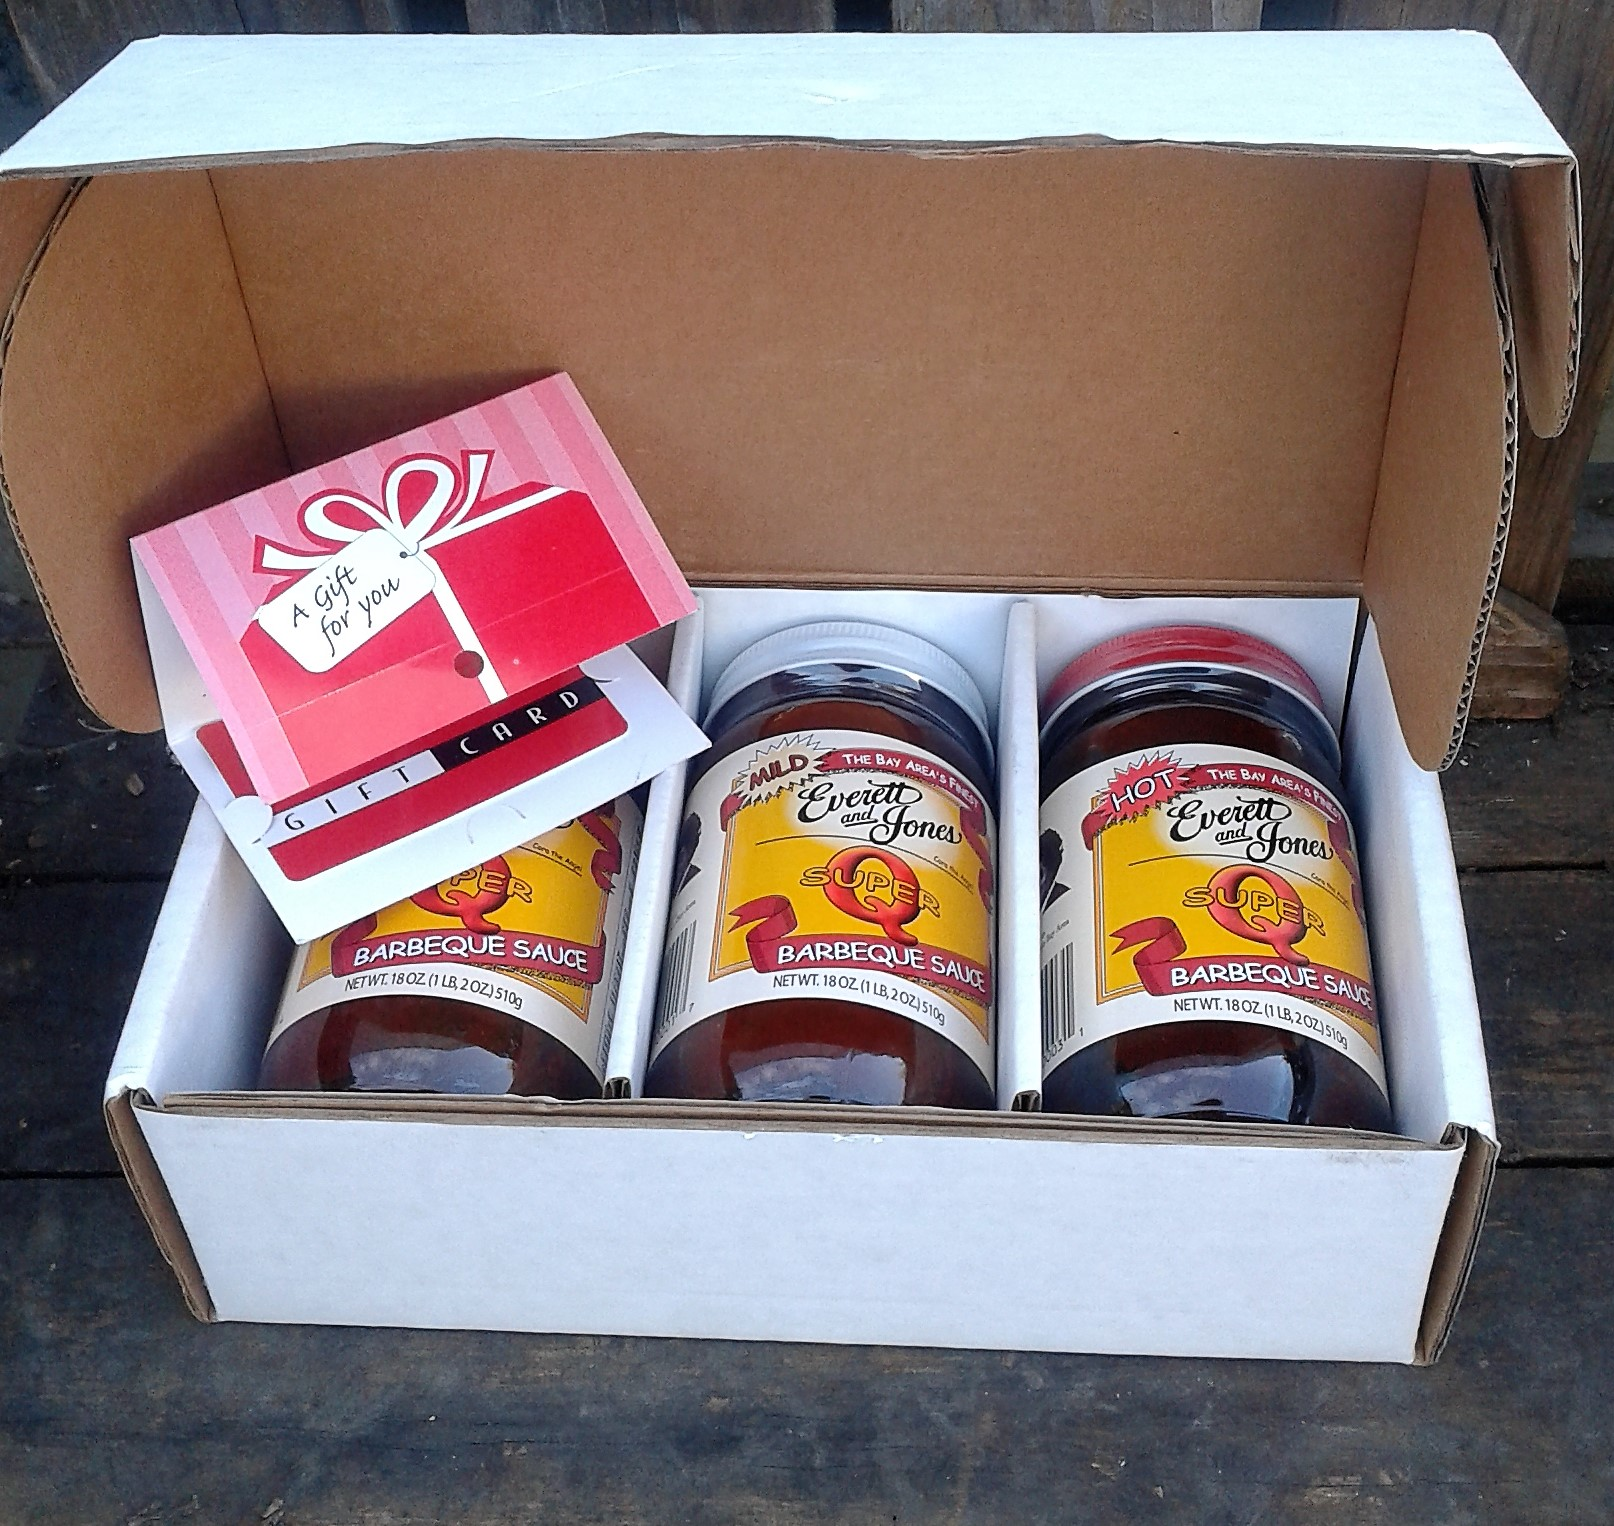 A gift box of Everett and Jones Barbeque 3 sauces